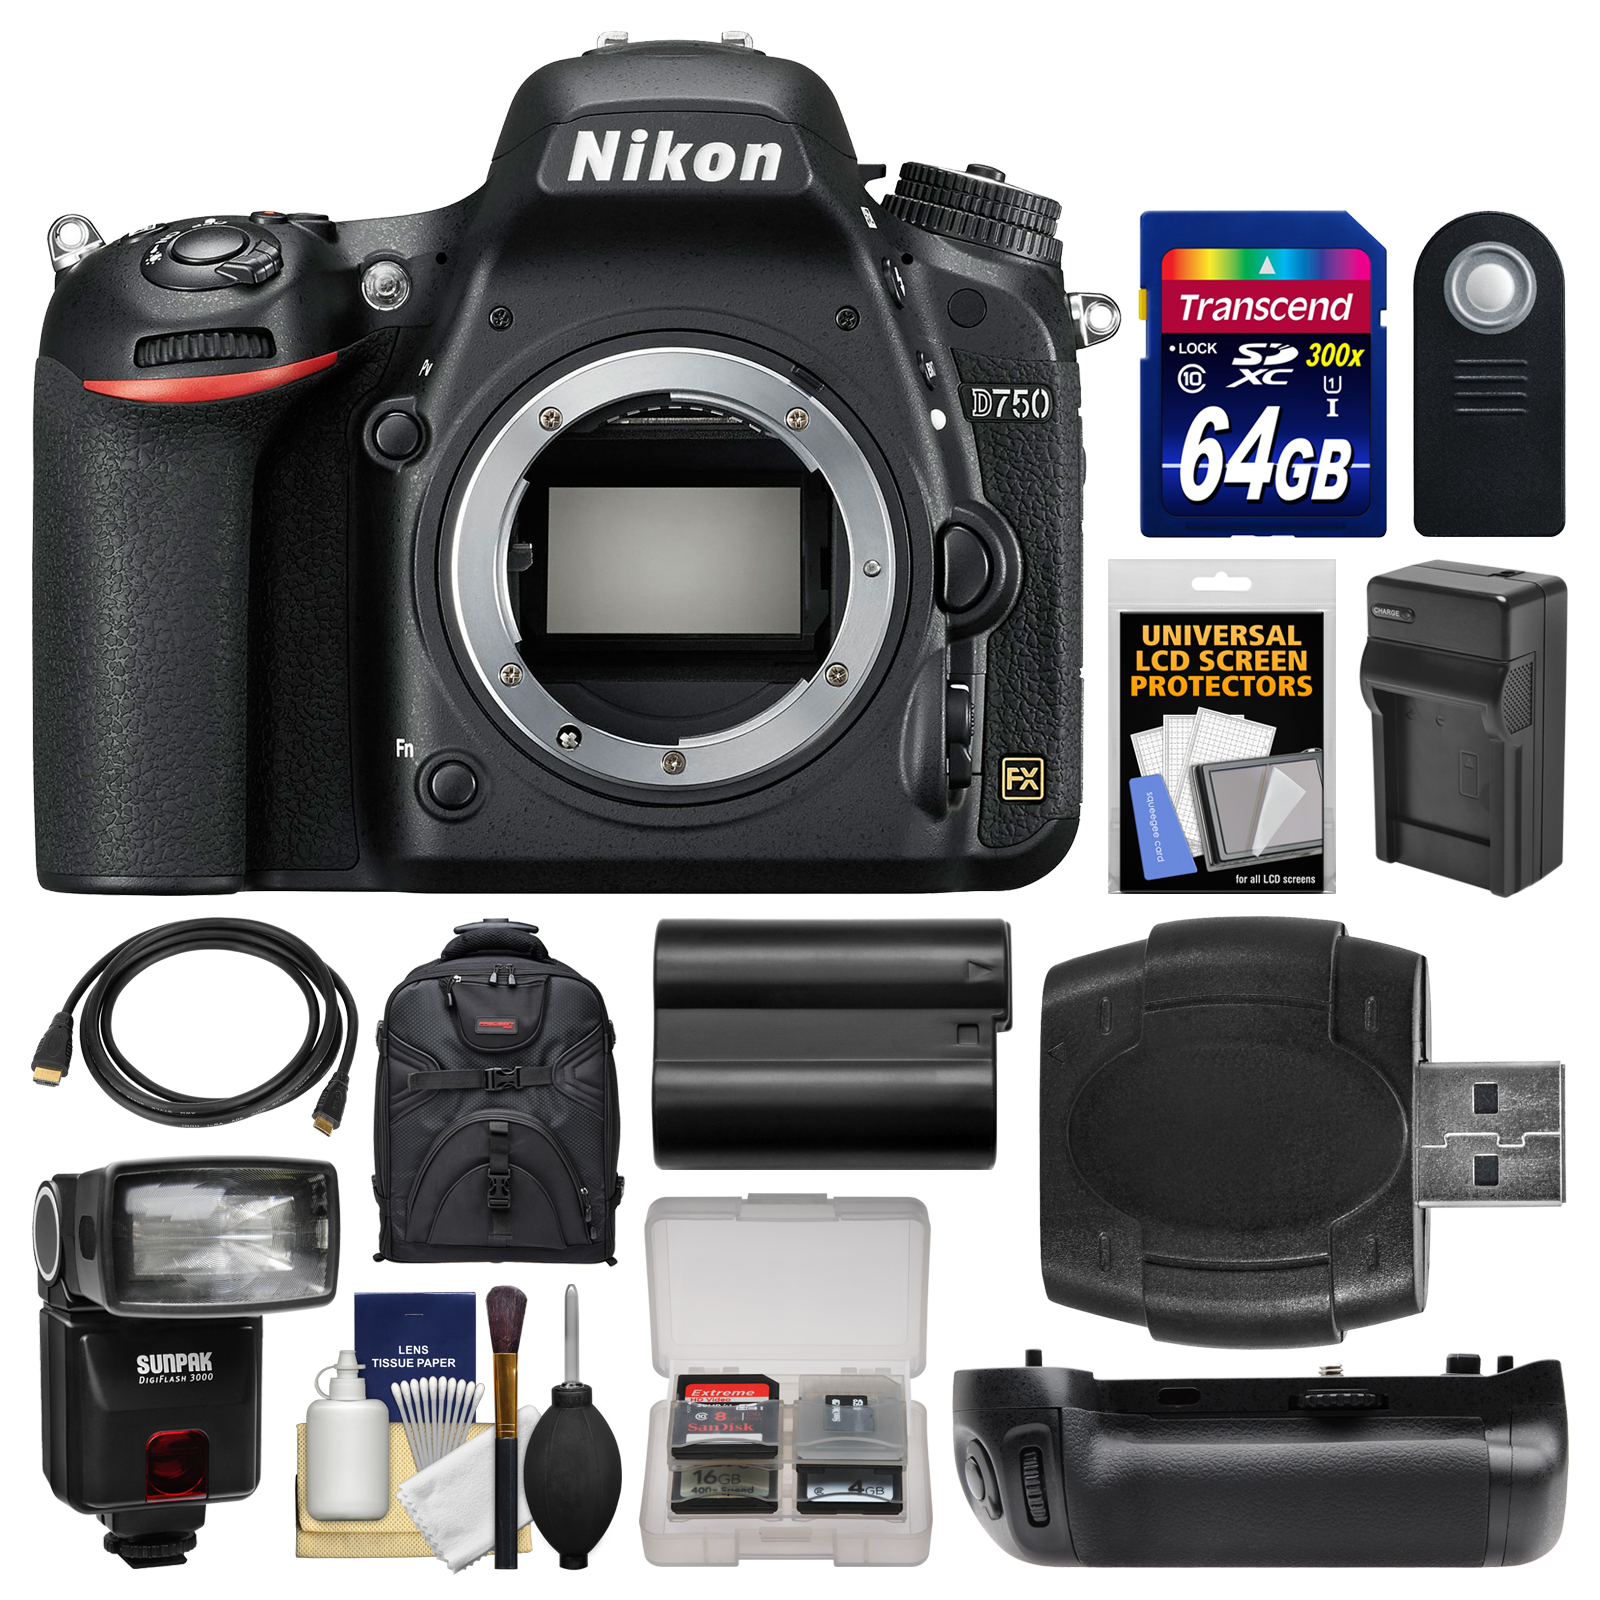 Nikon D750 Digital SLR Camera Body with 64GB Card + Case + Flash + Battery & Charger + Grip + Remote + Kit